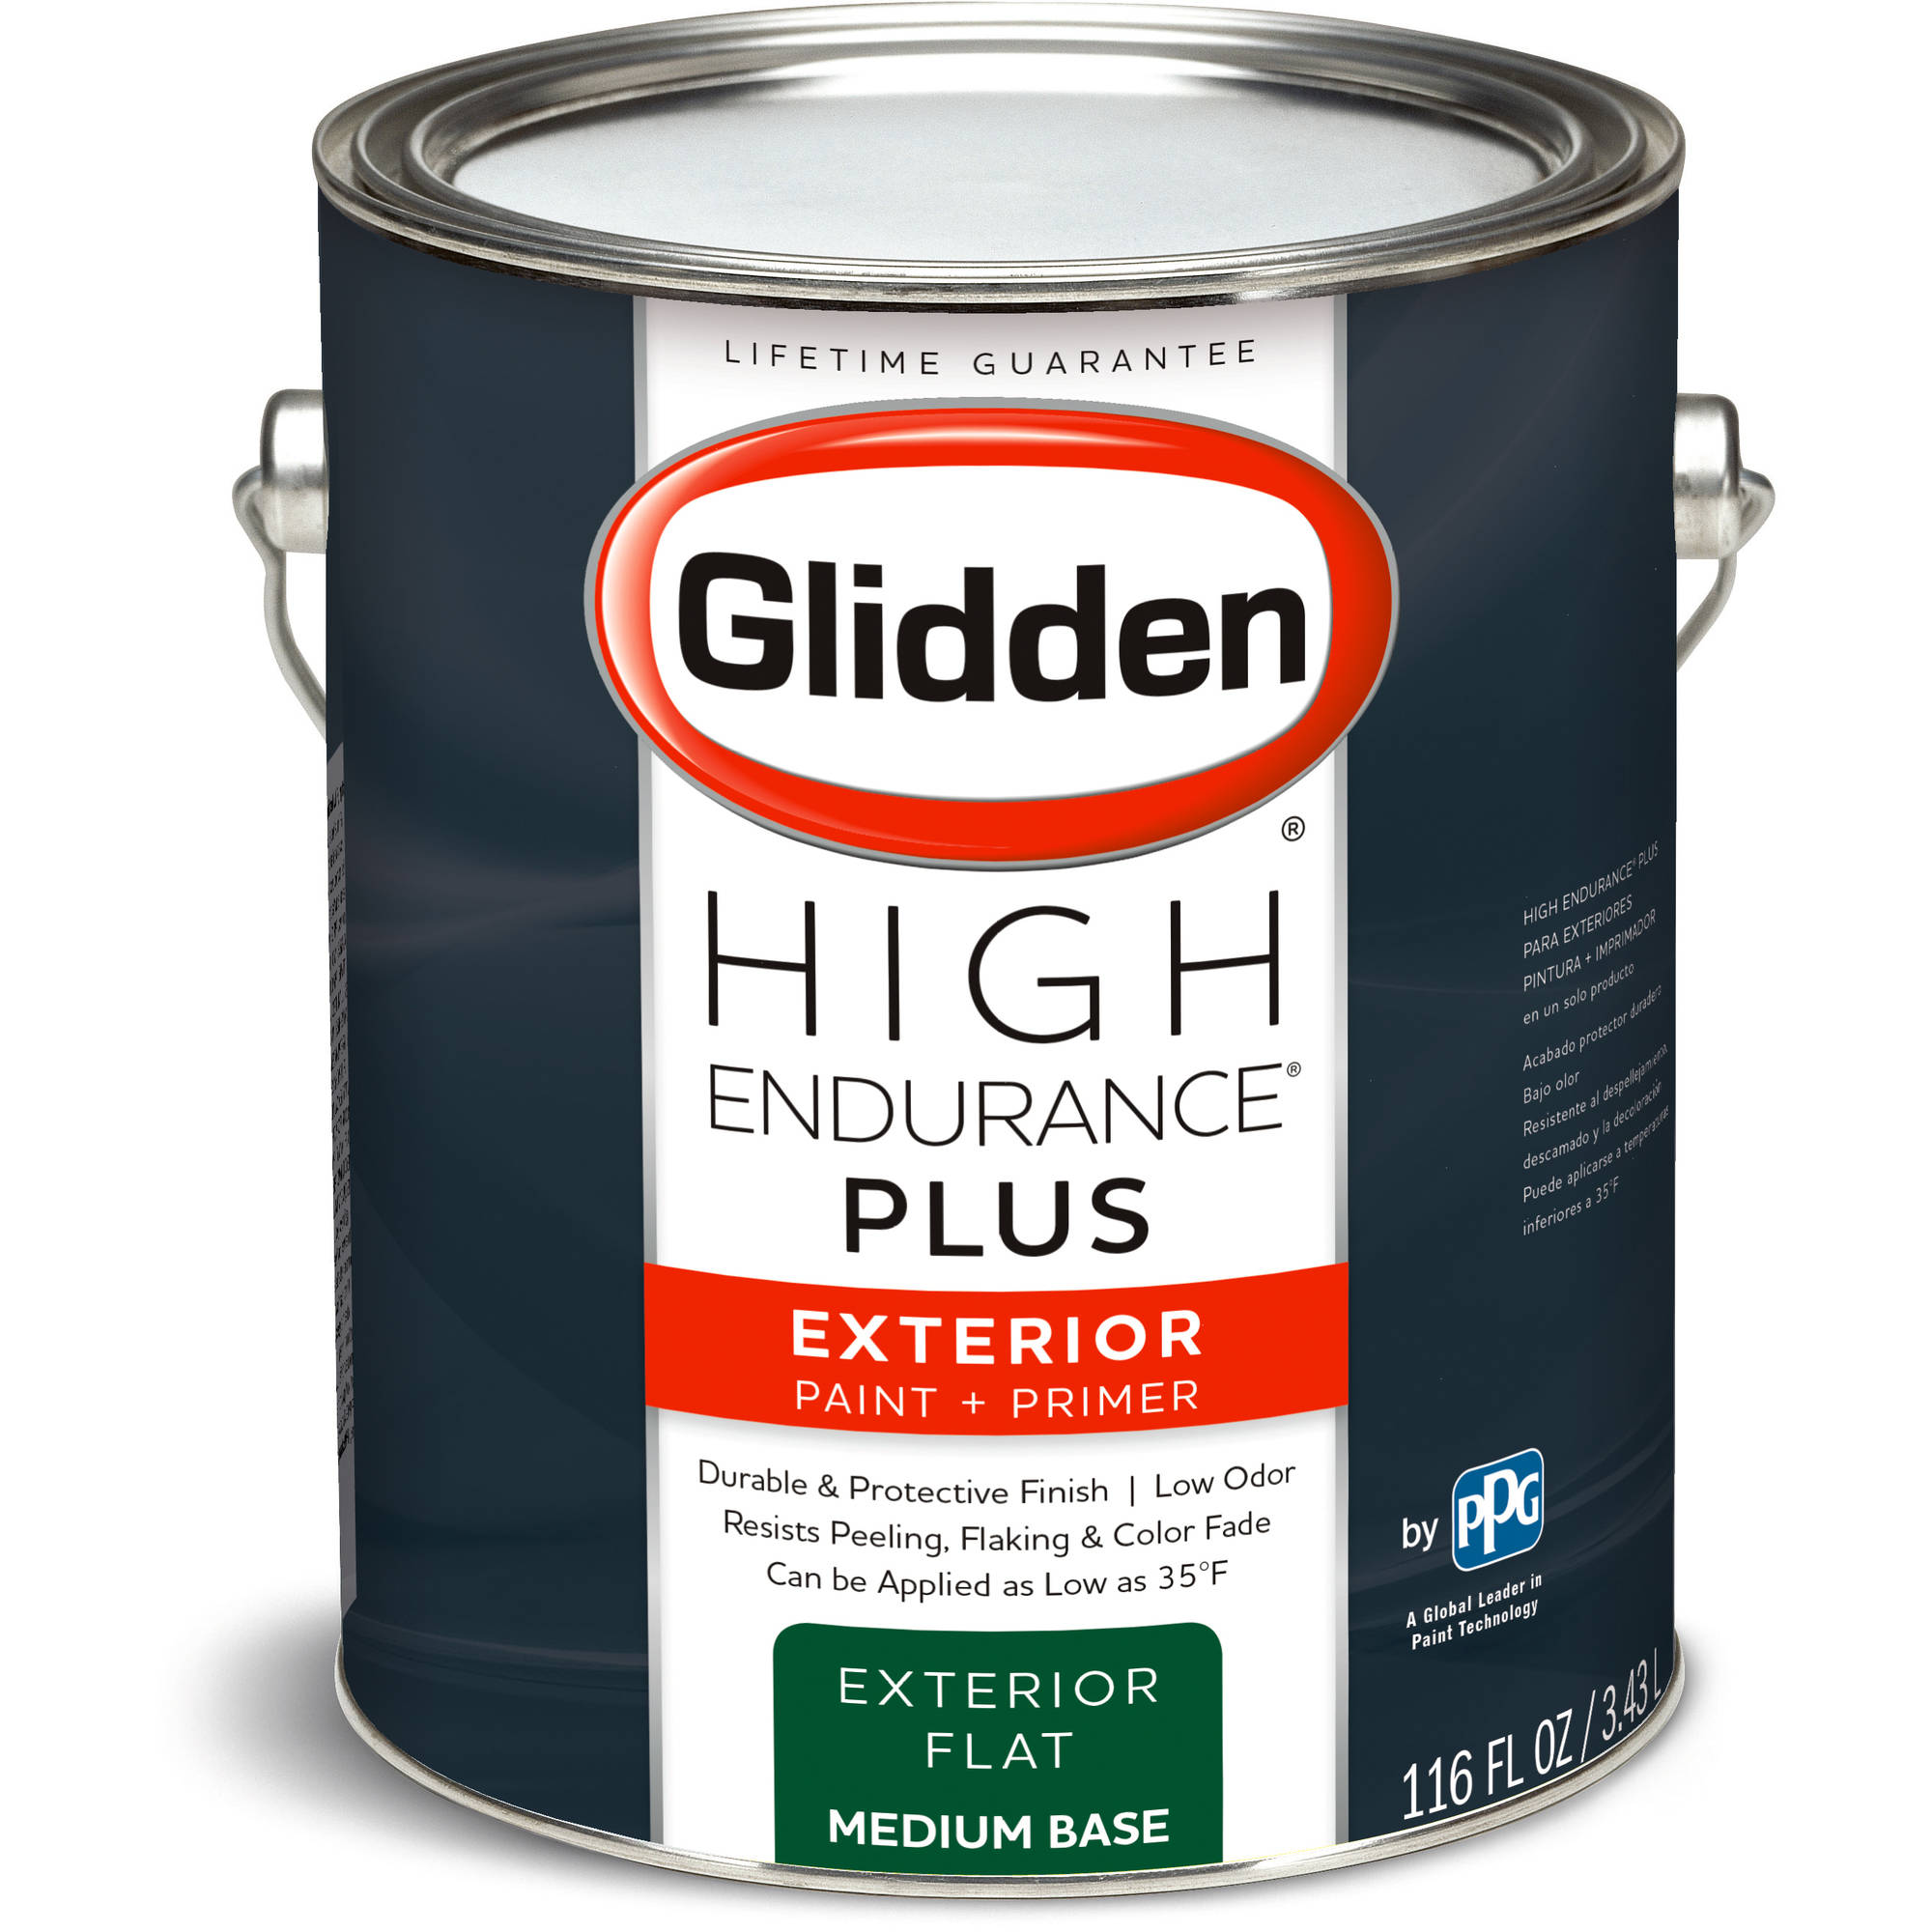 Glidden High Endurance Plus, Exterior Paint and Primer, Flat Finish, Medium Base, 1 Gallon